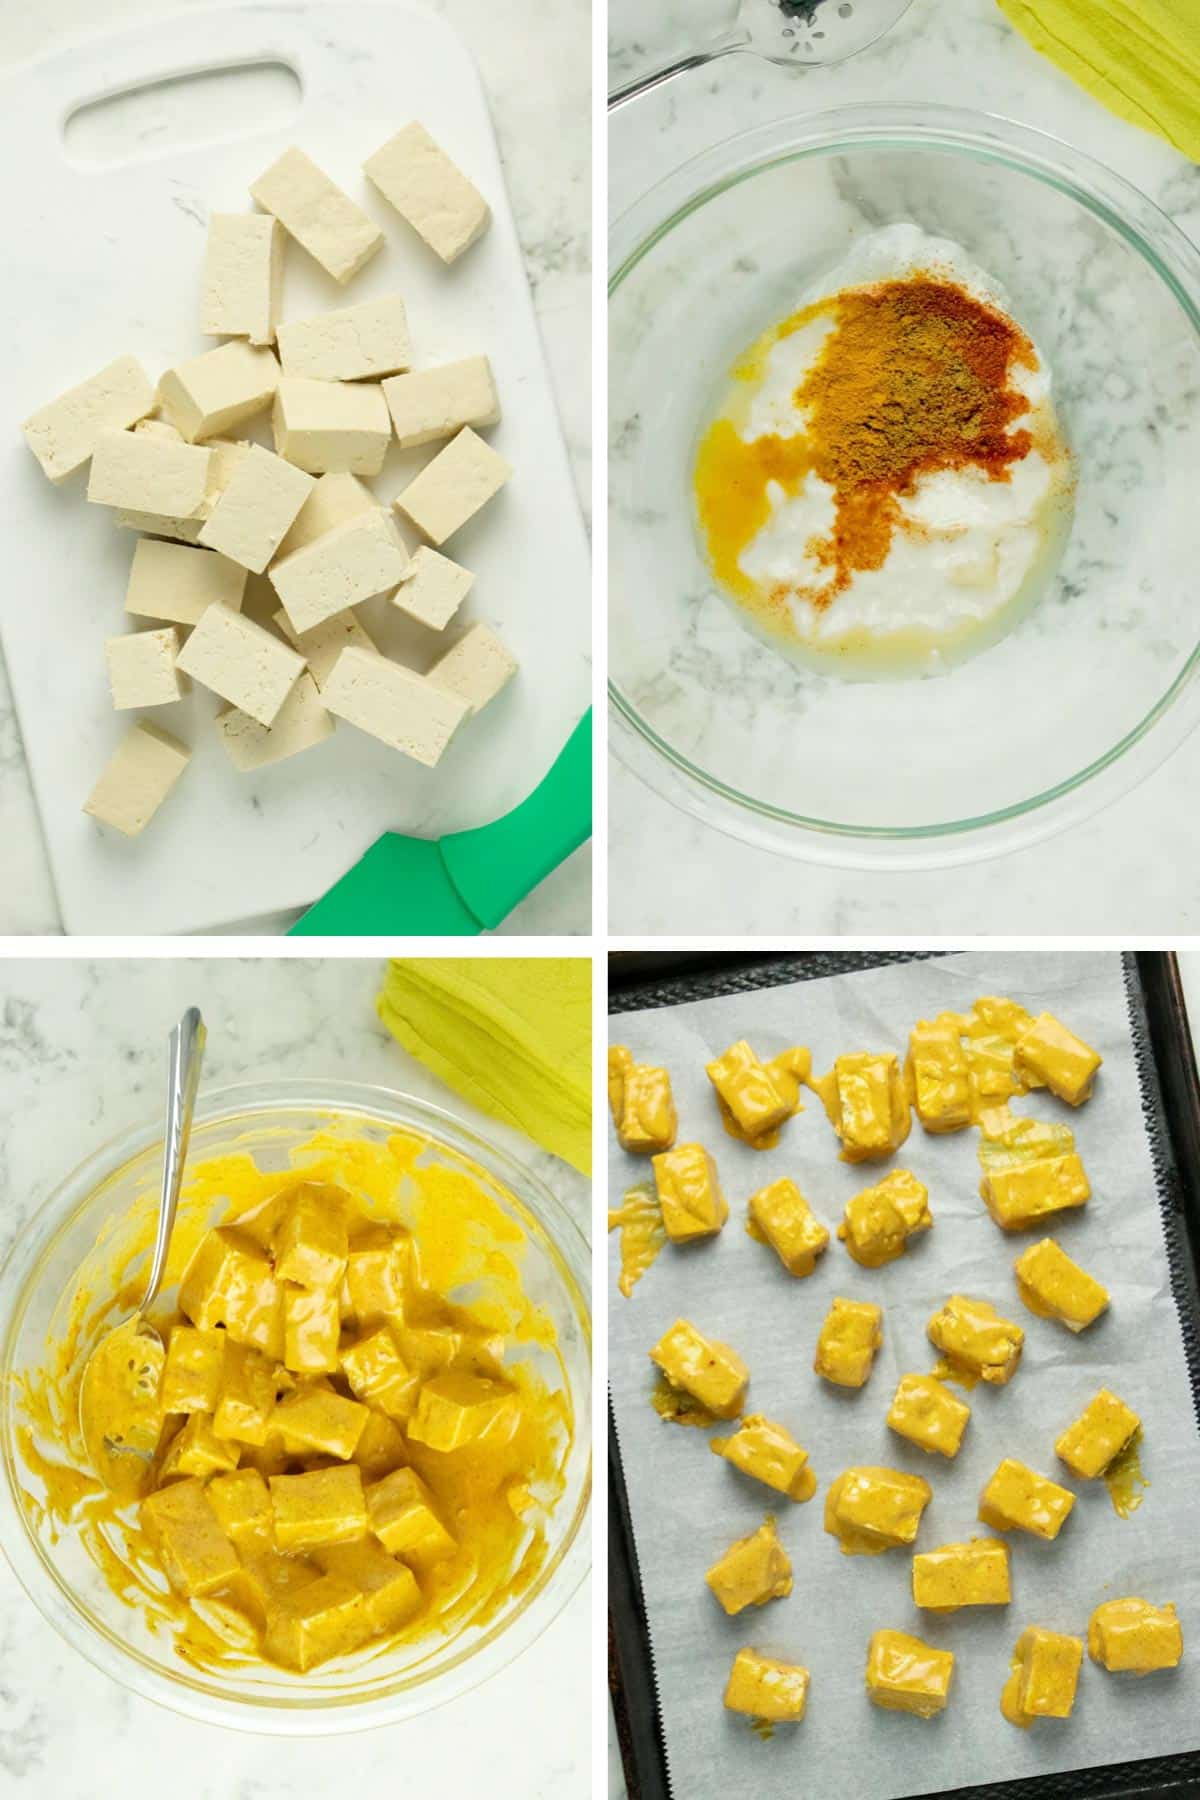 step-by-step image collage showing how to marinate and bake the tofu